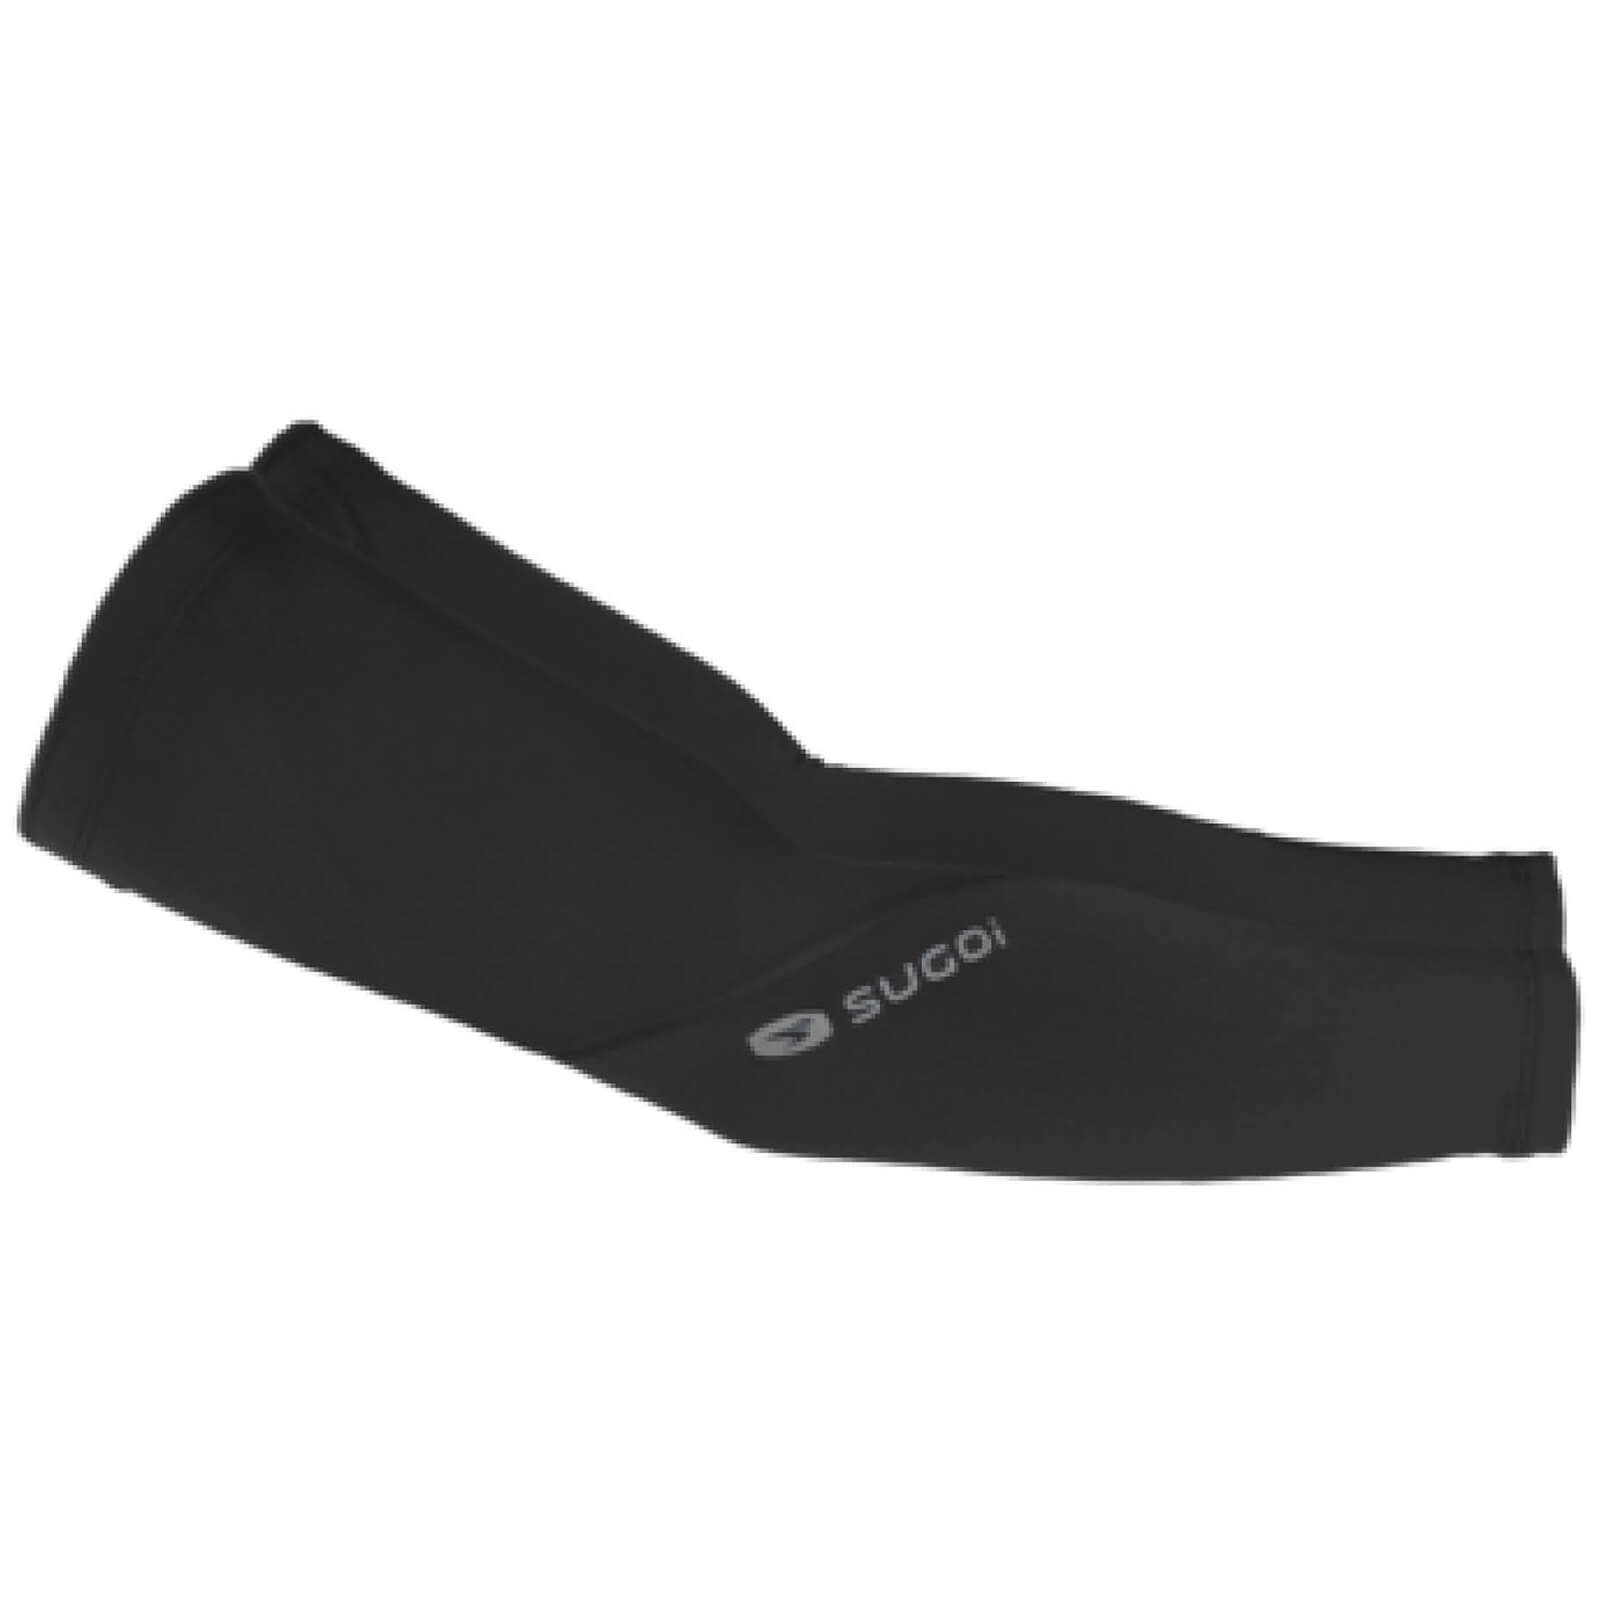 Sugoi MidZero Arm Warmers - Black